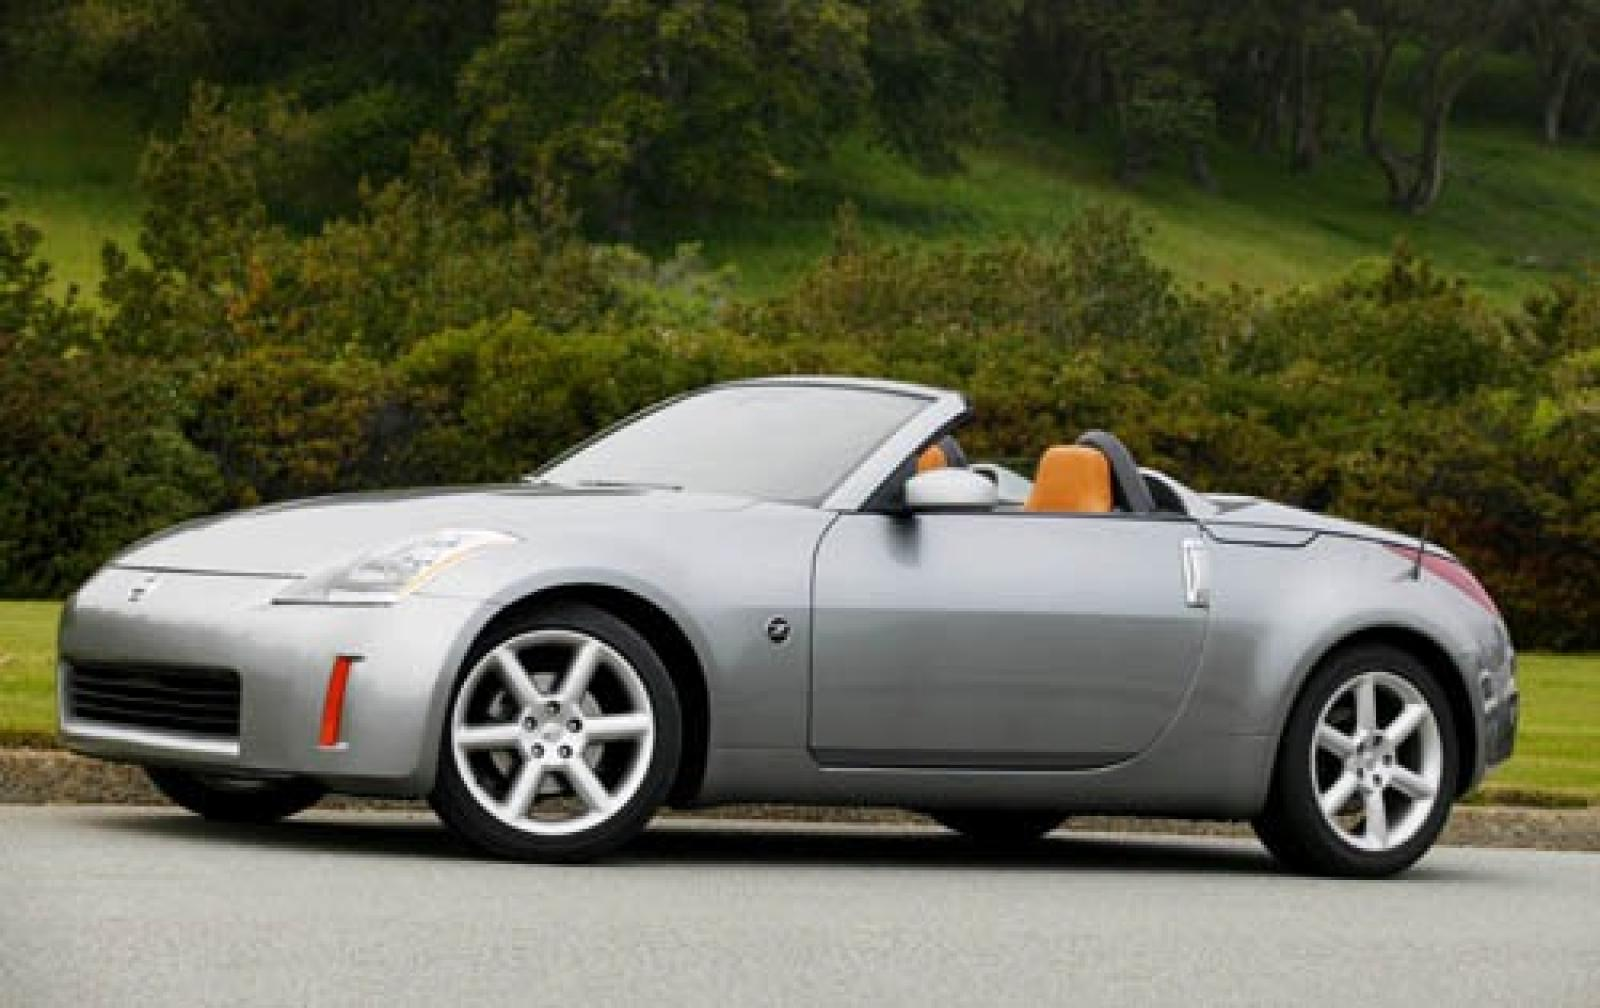 2004 nissan 350z enthusiast convertible image collections hd 2005 nissan 350z information and photos zombiedrive nissan gallery vanachro image collections vanachro Image collections